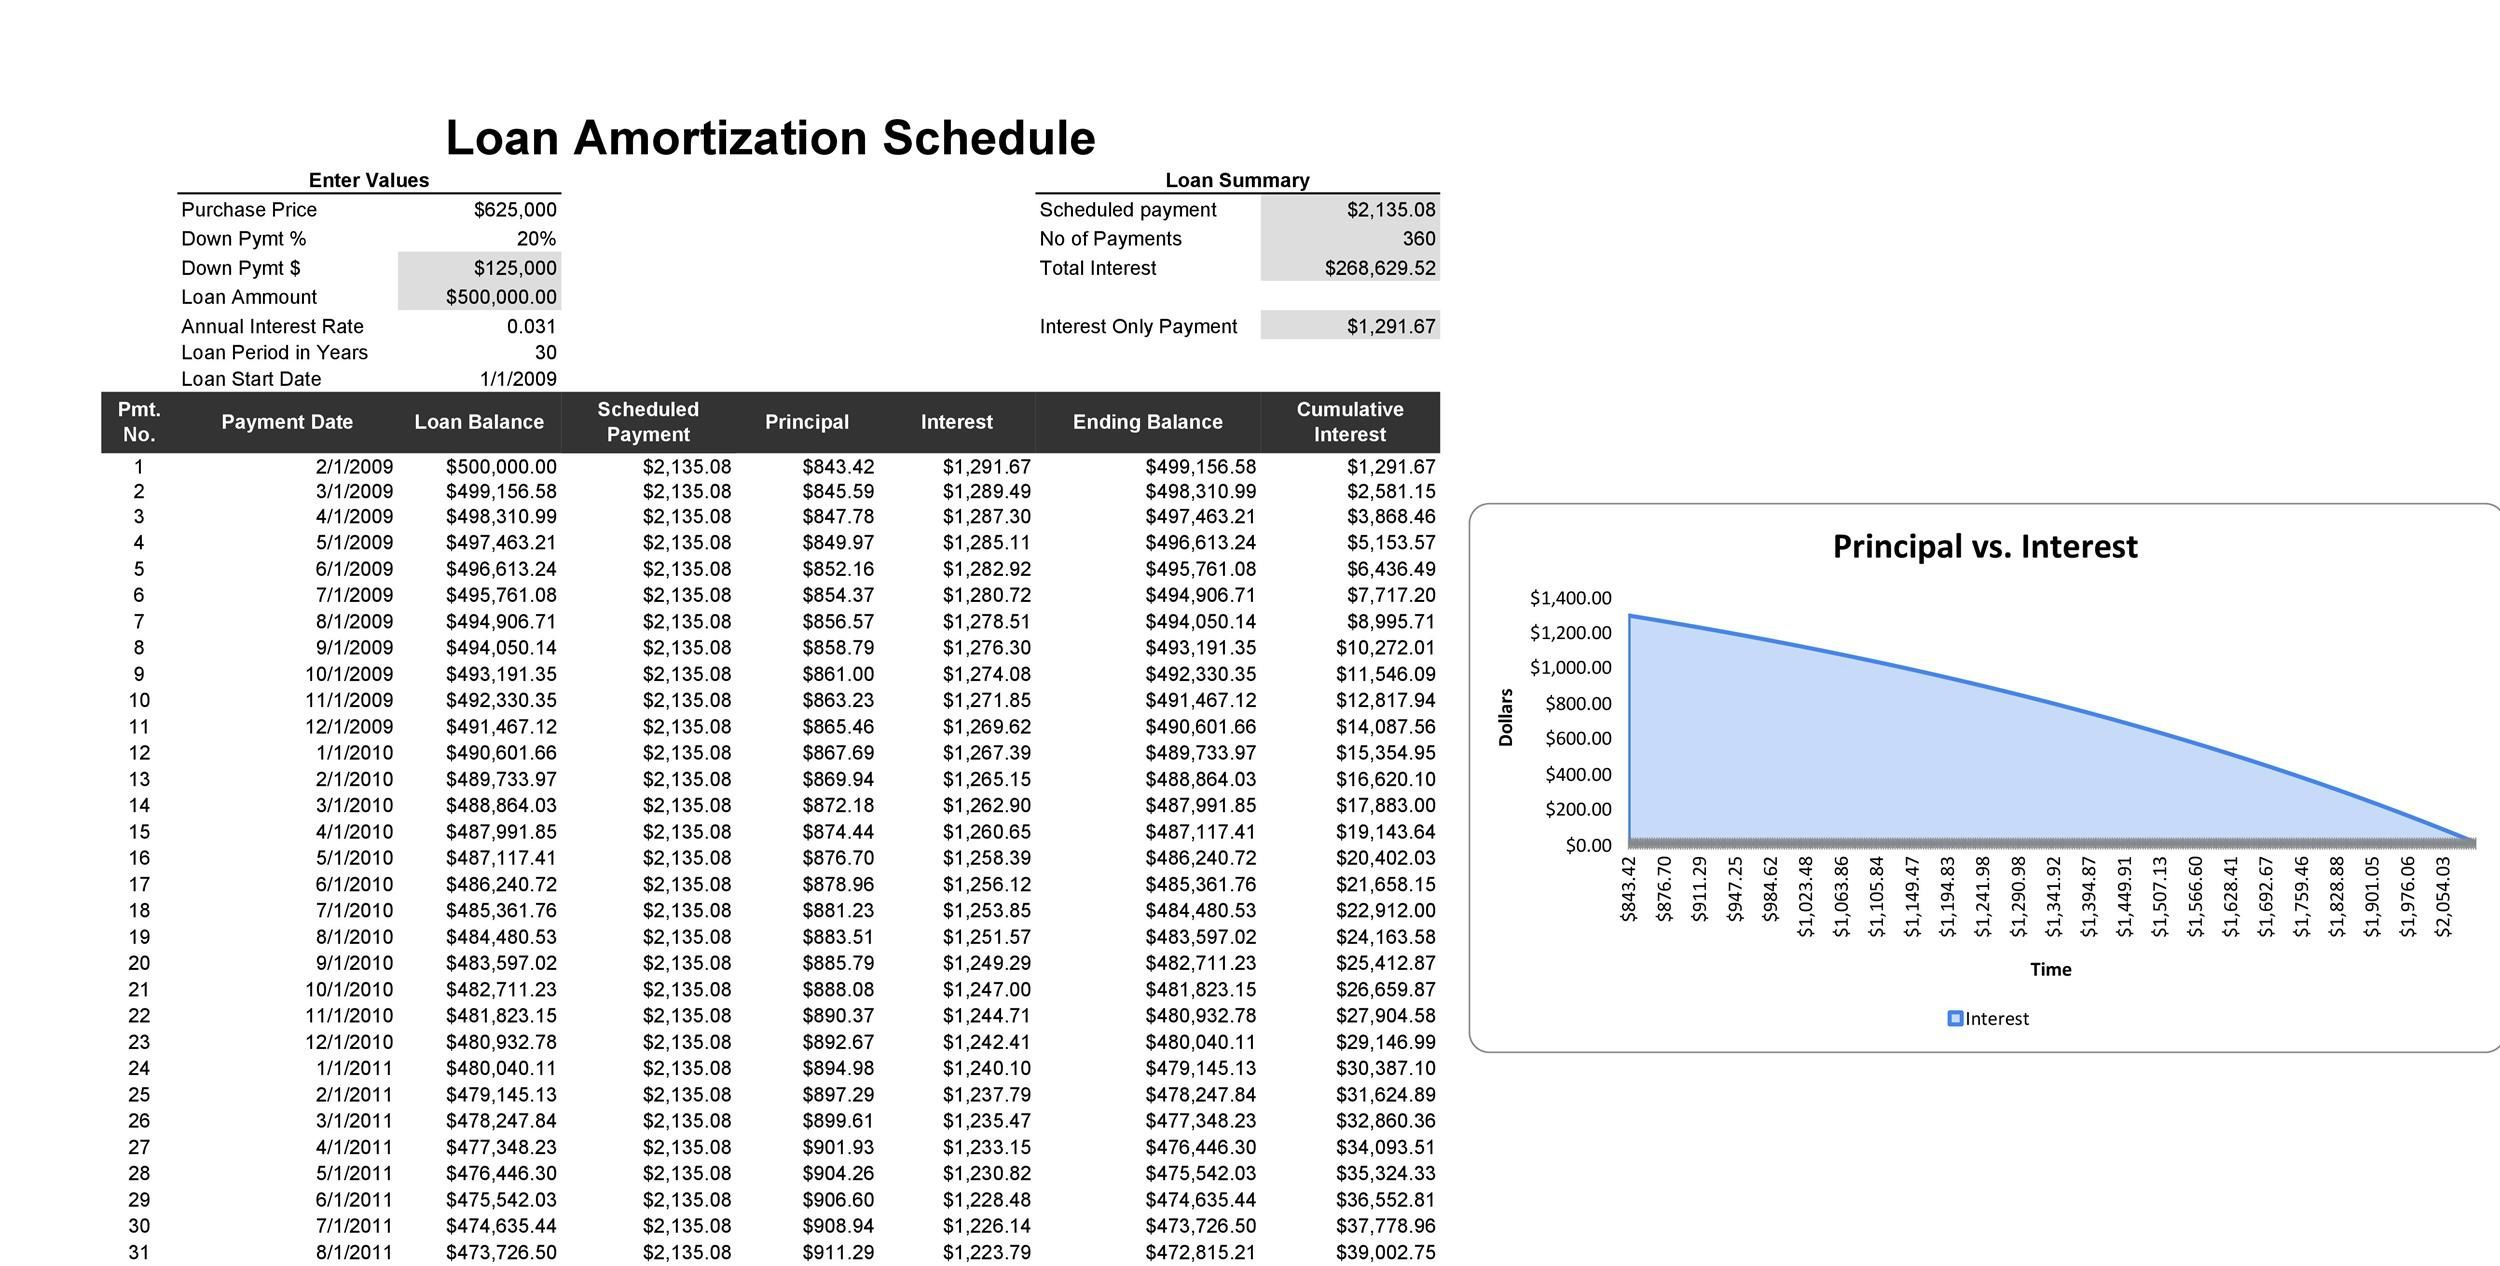 007 Marvelou Loan Amortization Excel Template High Def  Schedule 2010 Free 2007Full